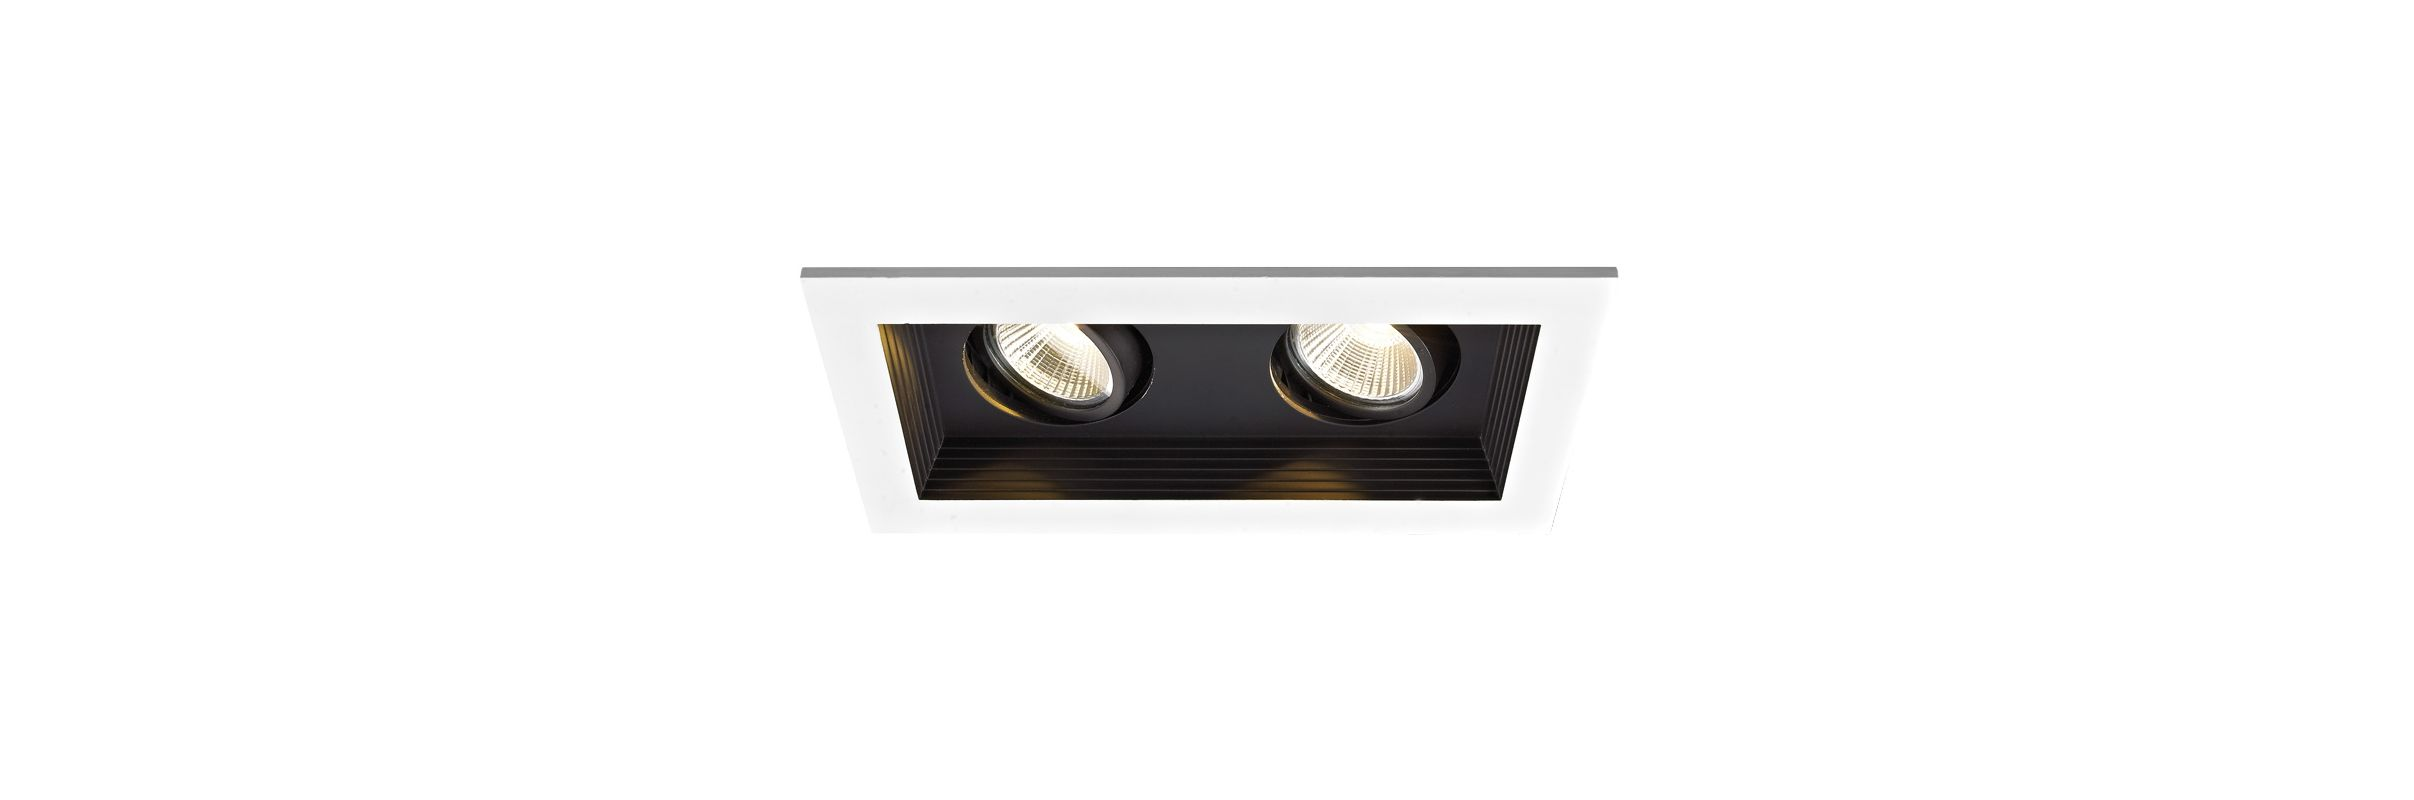 WAC Lighting MT-3LD211R-F930 Remodel 1 Light Mini LED Recessed